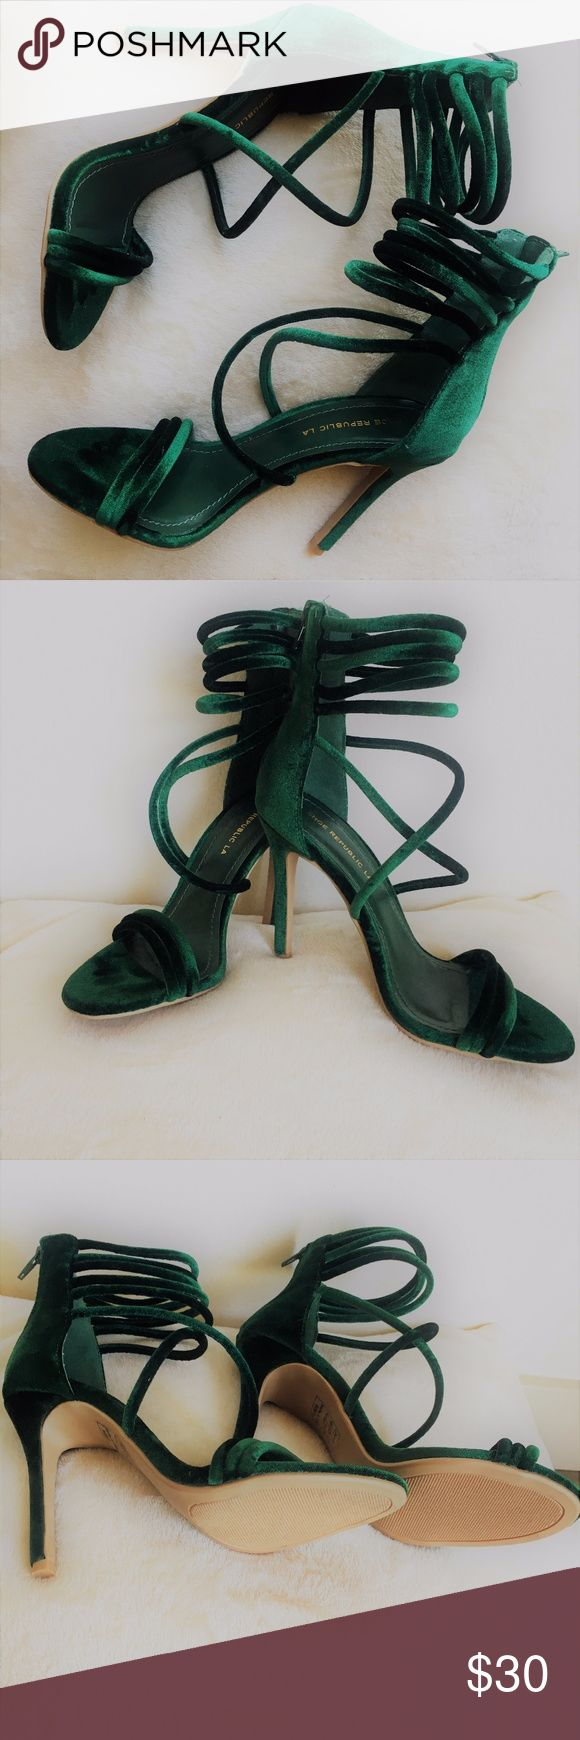 "Green Velvet Strappy Heels (Price Negotiable!) Beautiful emerald green strappy heels, perfect for the holiday season! Great condition, worn once to holiday party.  Heel height: 4.25"" Shaft height: 4.75"" Shoe Republic LA Shoes Heels"